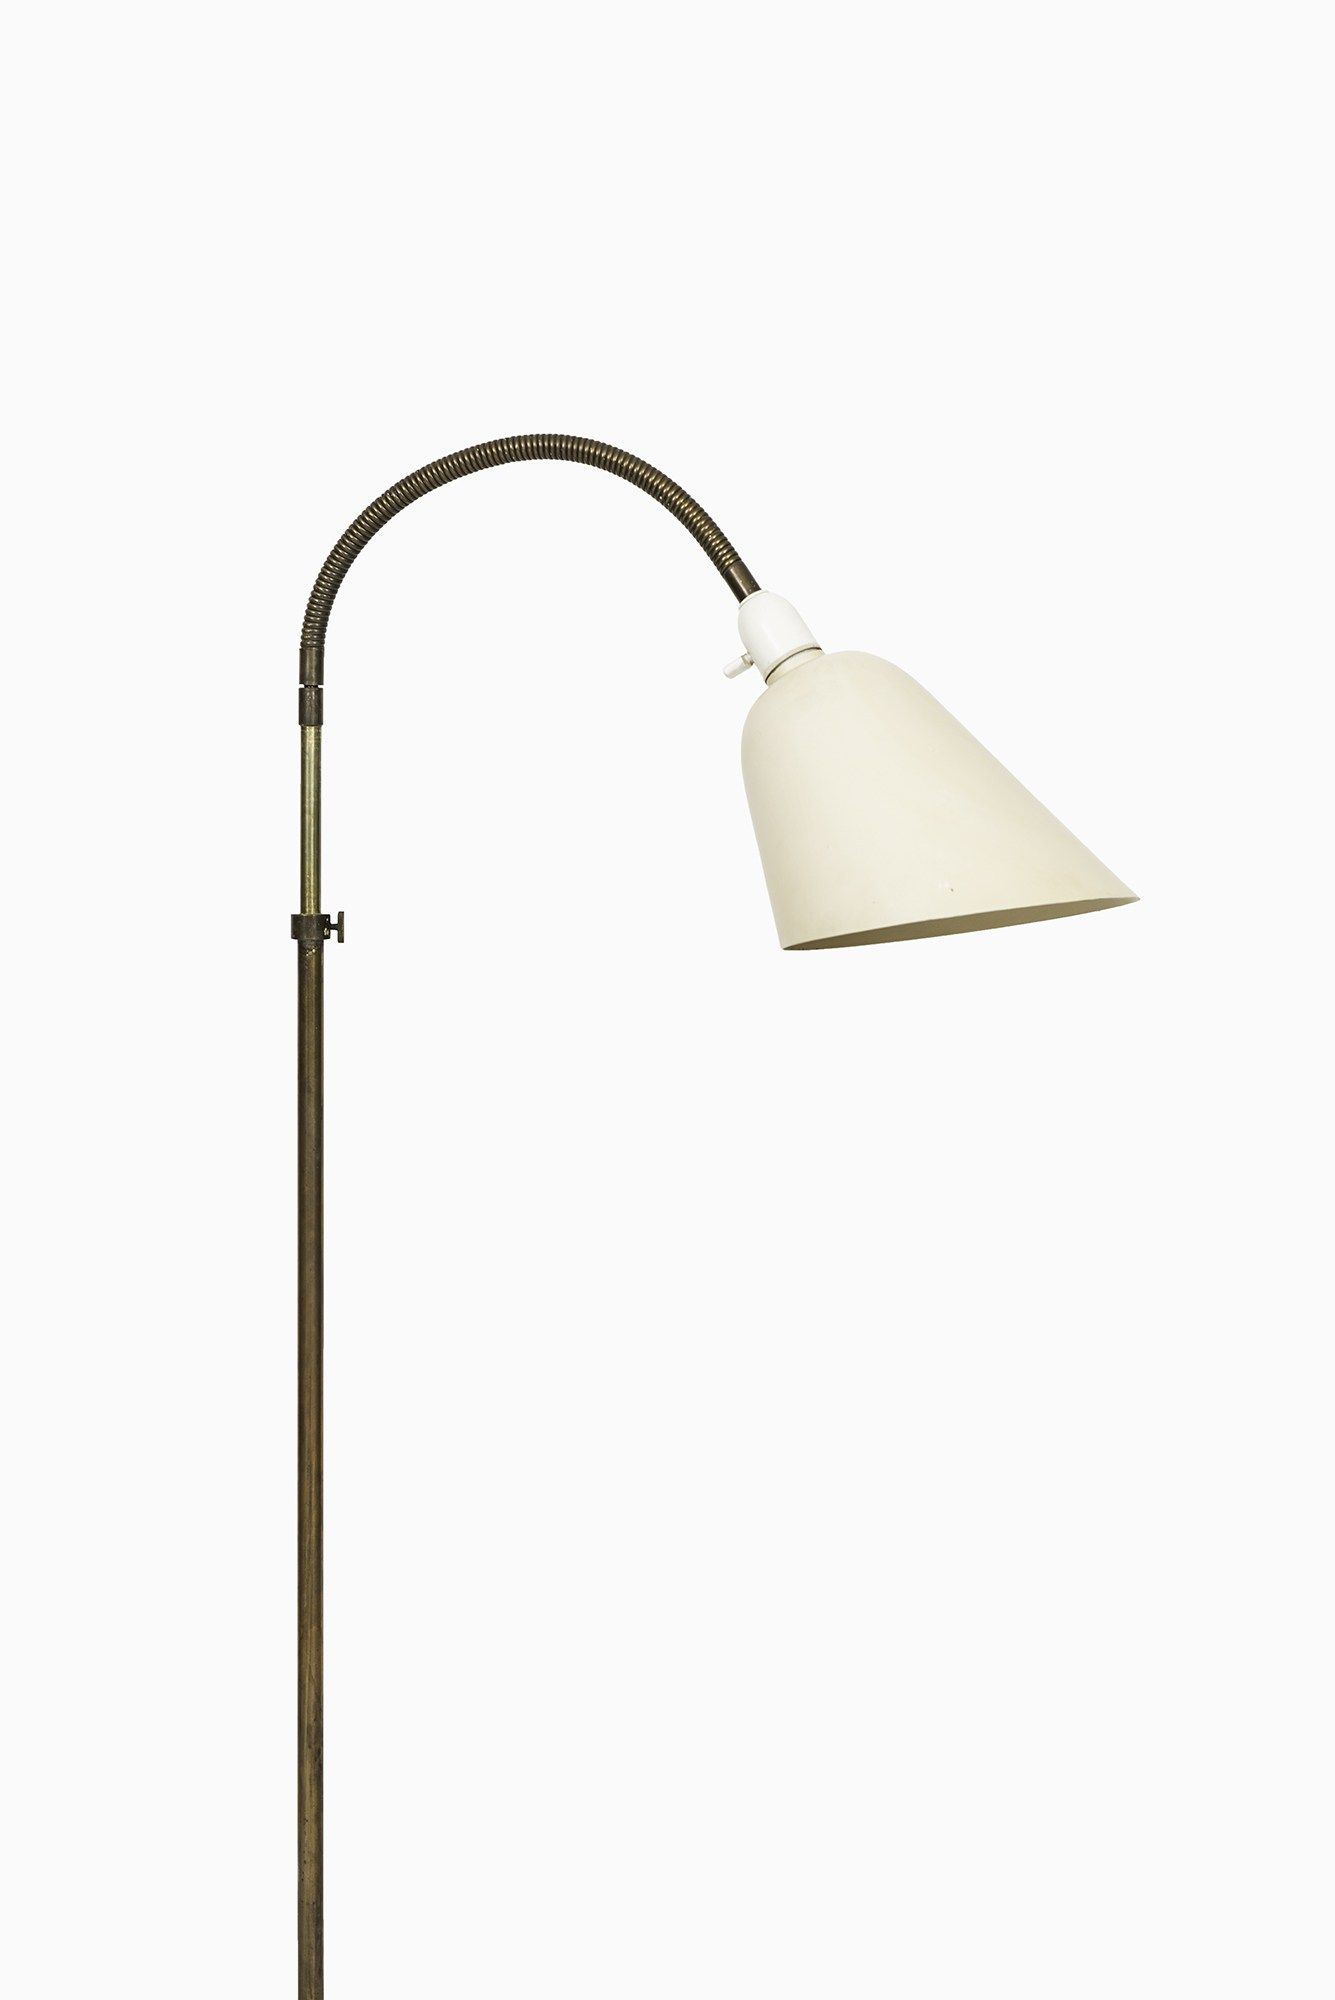 Arne jacobsen floor lamp arne jacobsen and floor lamp